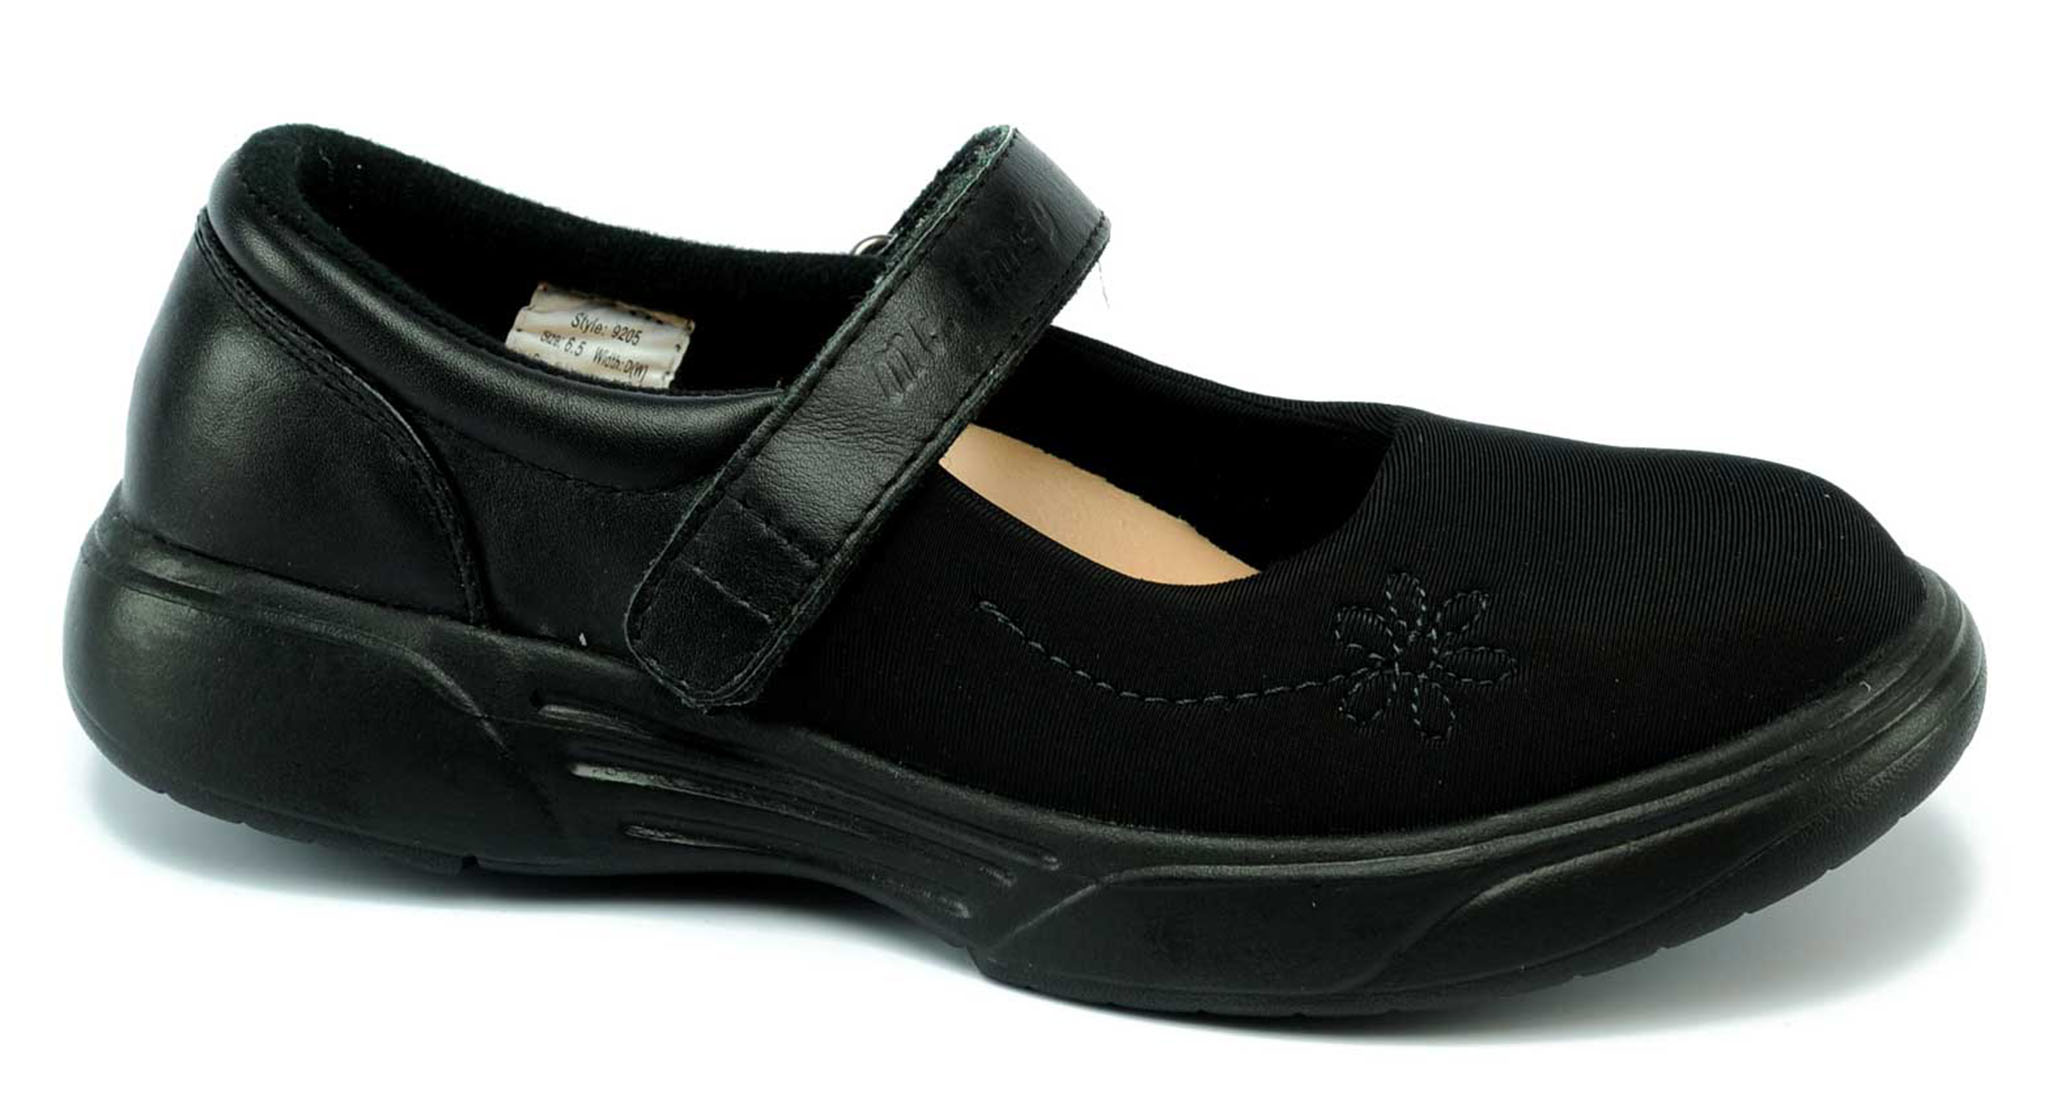 Apis Extreme-Light Mary Jane - Casual Walking Shoe